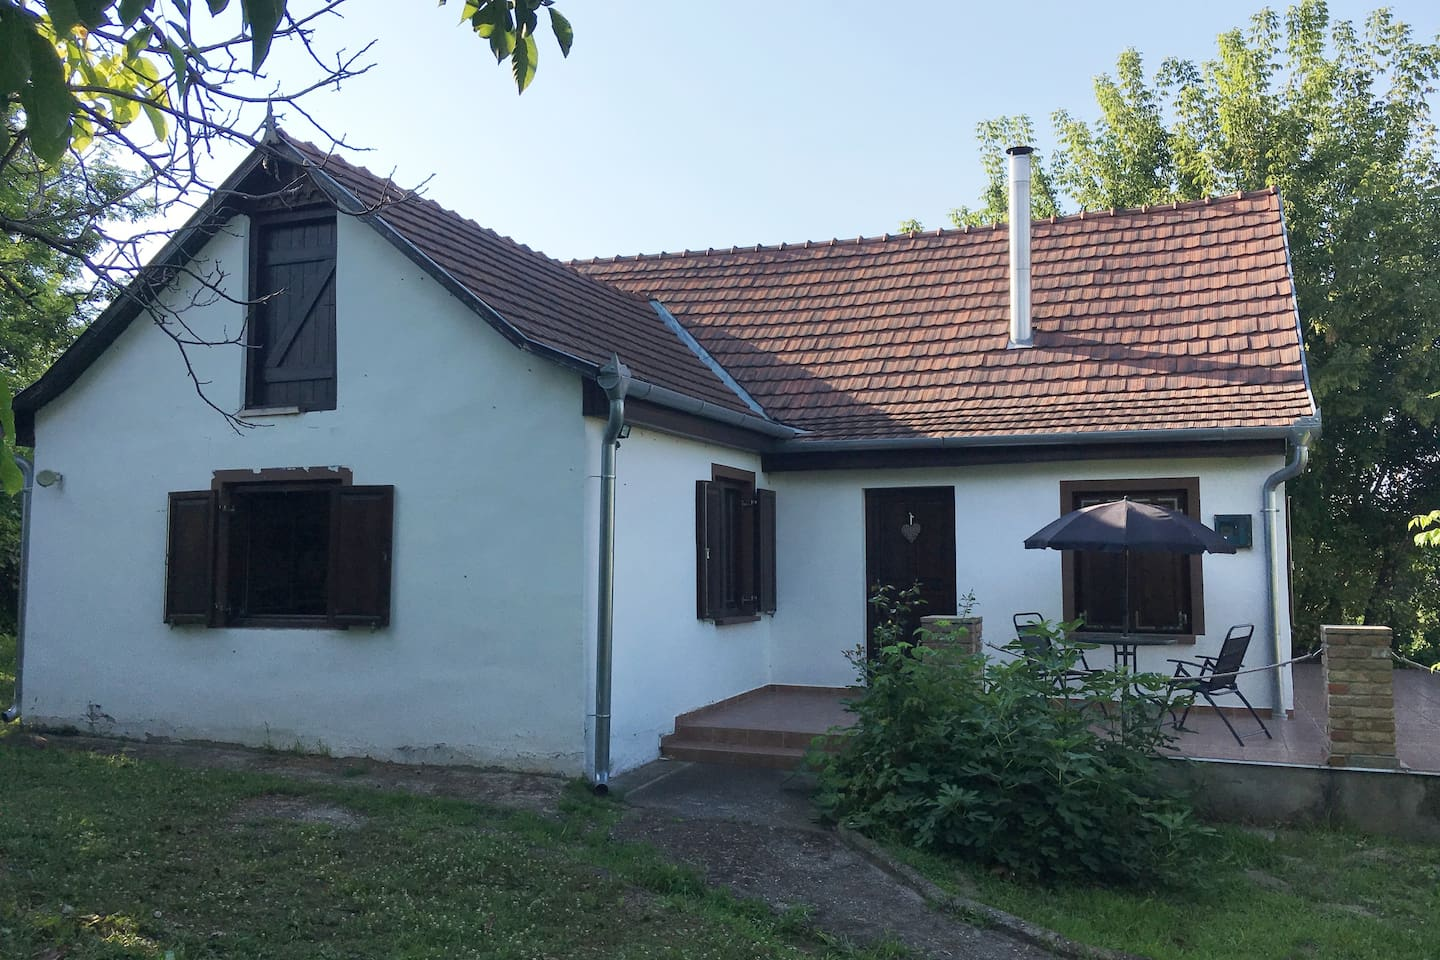 Beautiful restored Hungarian Cottage for relaxing holidays away from the hustle and bustle but only 12km from the bustling town of Siofok and the beautiful beaches of lake Balaton where you can bath in the warm shallow waters during the hot summers and a cosy retreat in the crisp cold winters